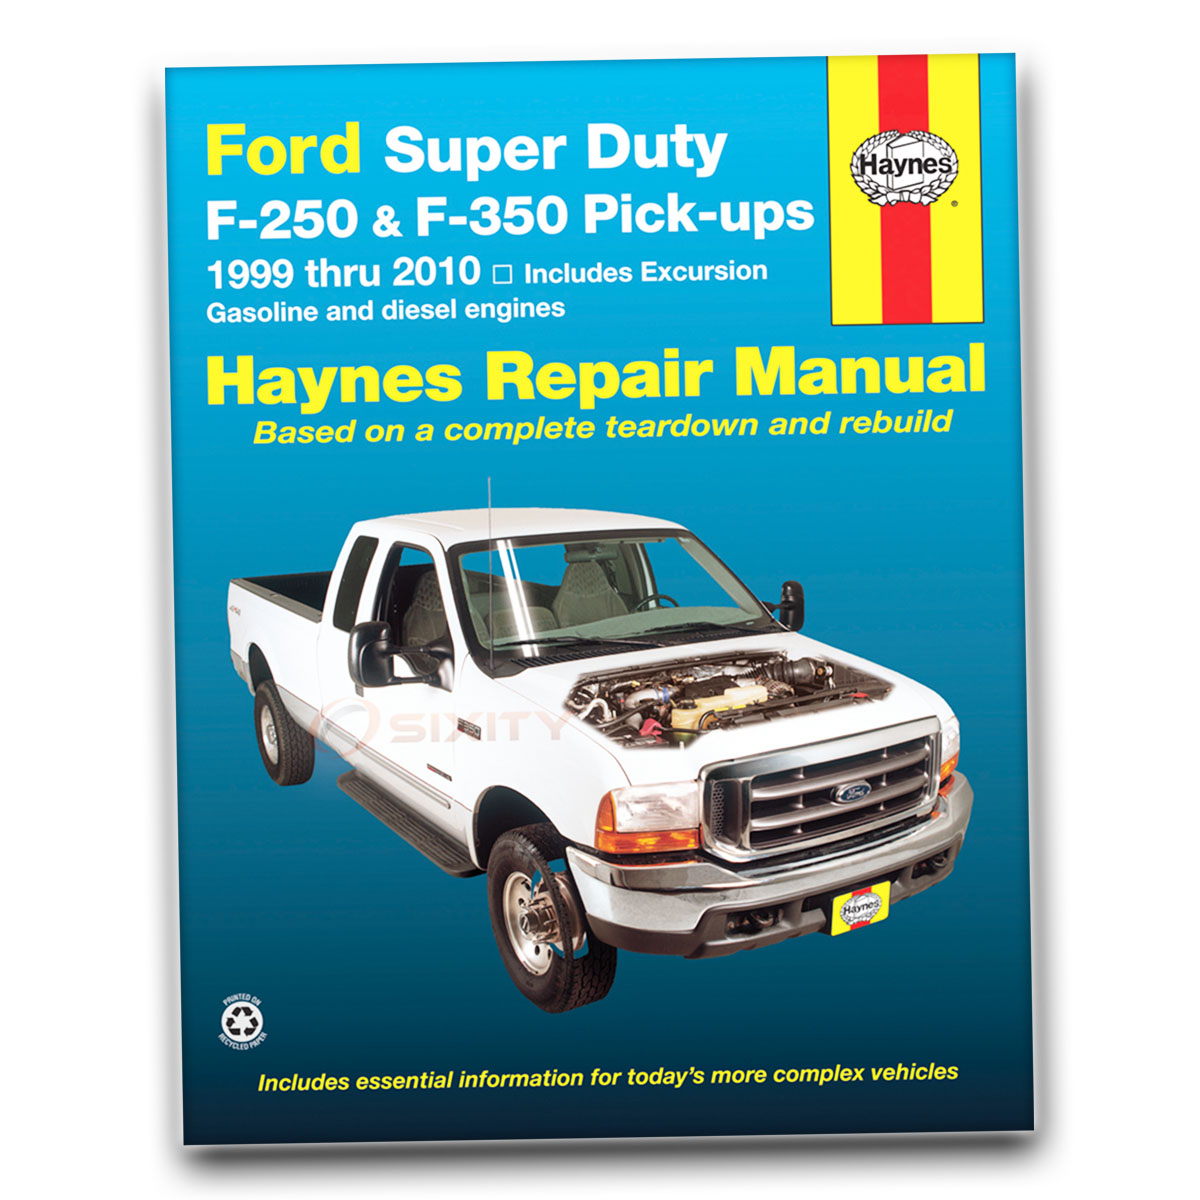 Haynes Repair Manual for Ford F-350 Super Duty XL Cabela's King Ranch FX4 jh